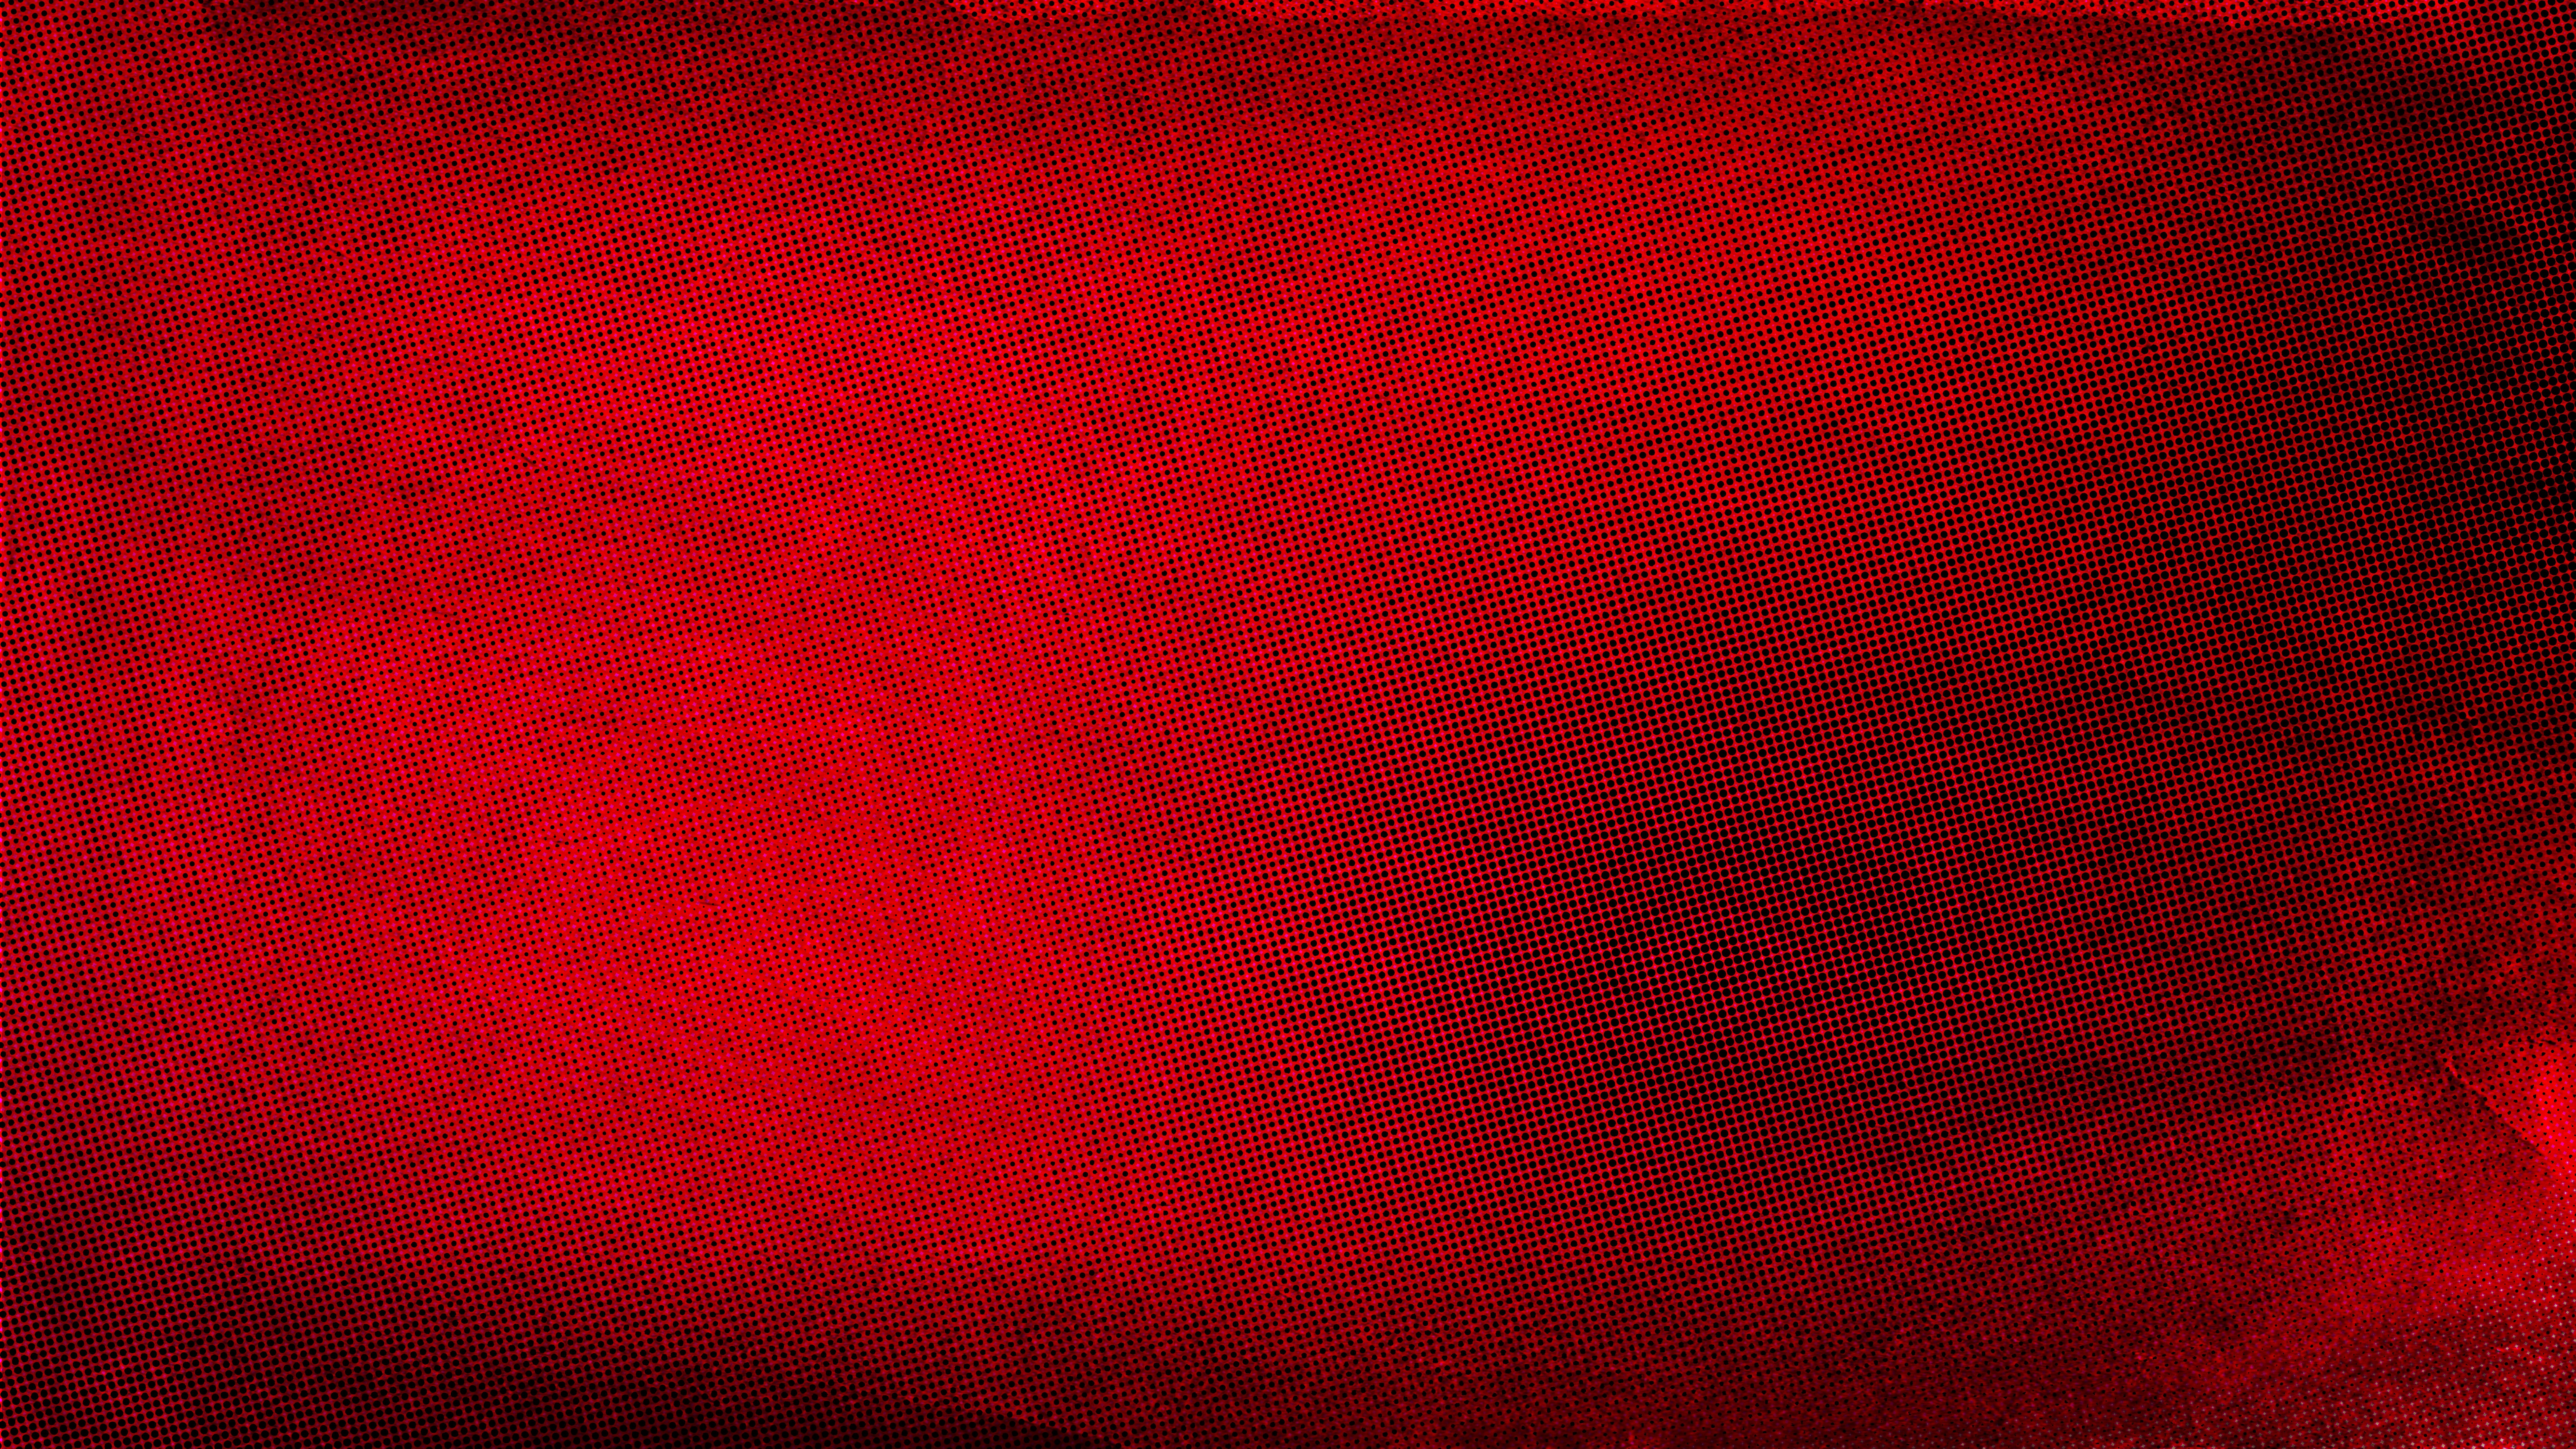 Distressed Red Background Vector: Dark Red Distressed Halftone Background